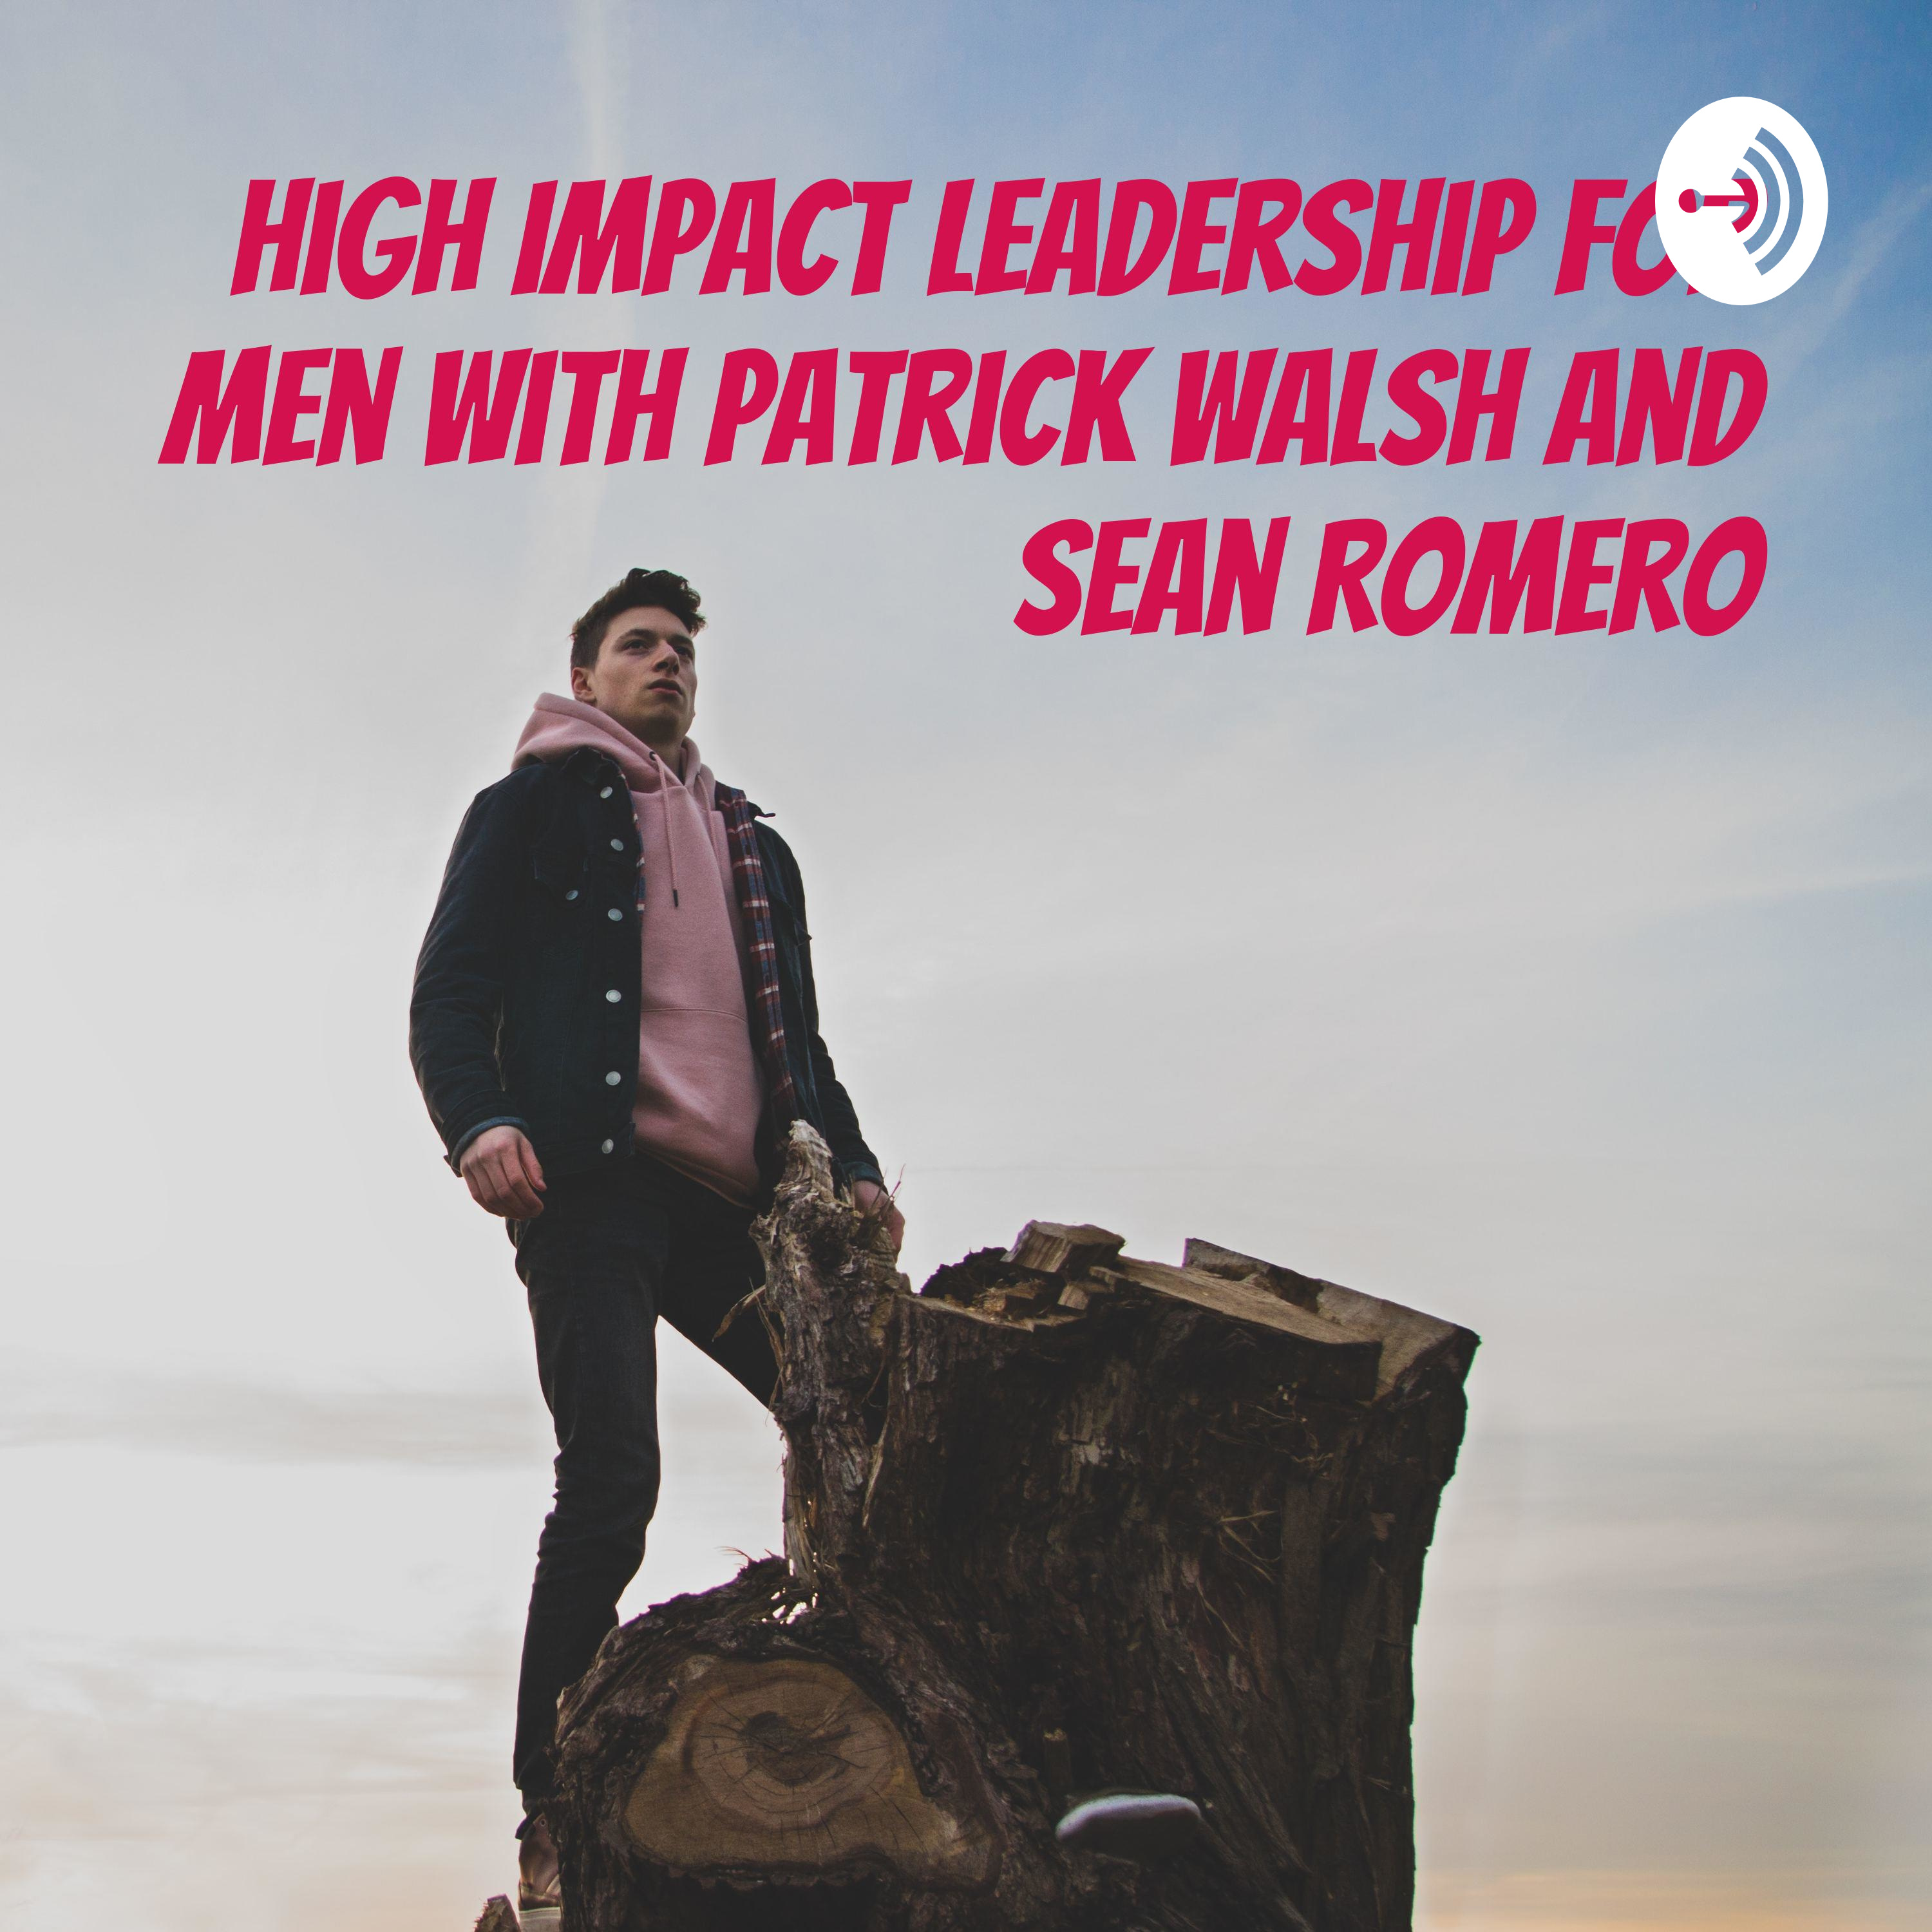 High Impact Leadership for Men Podcast with Patrick Walsh and Sean Romero